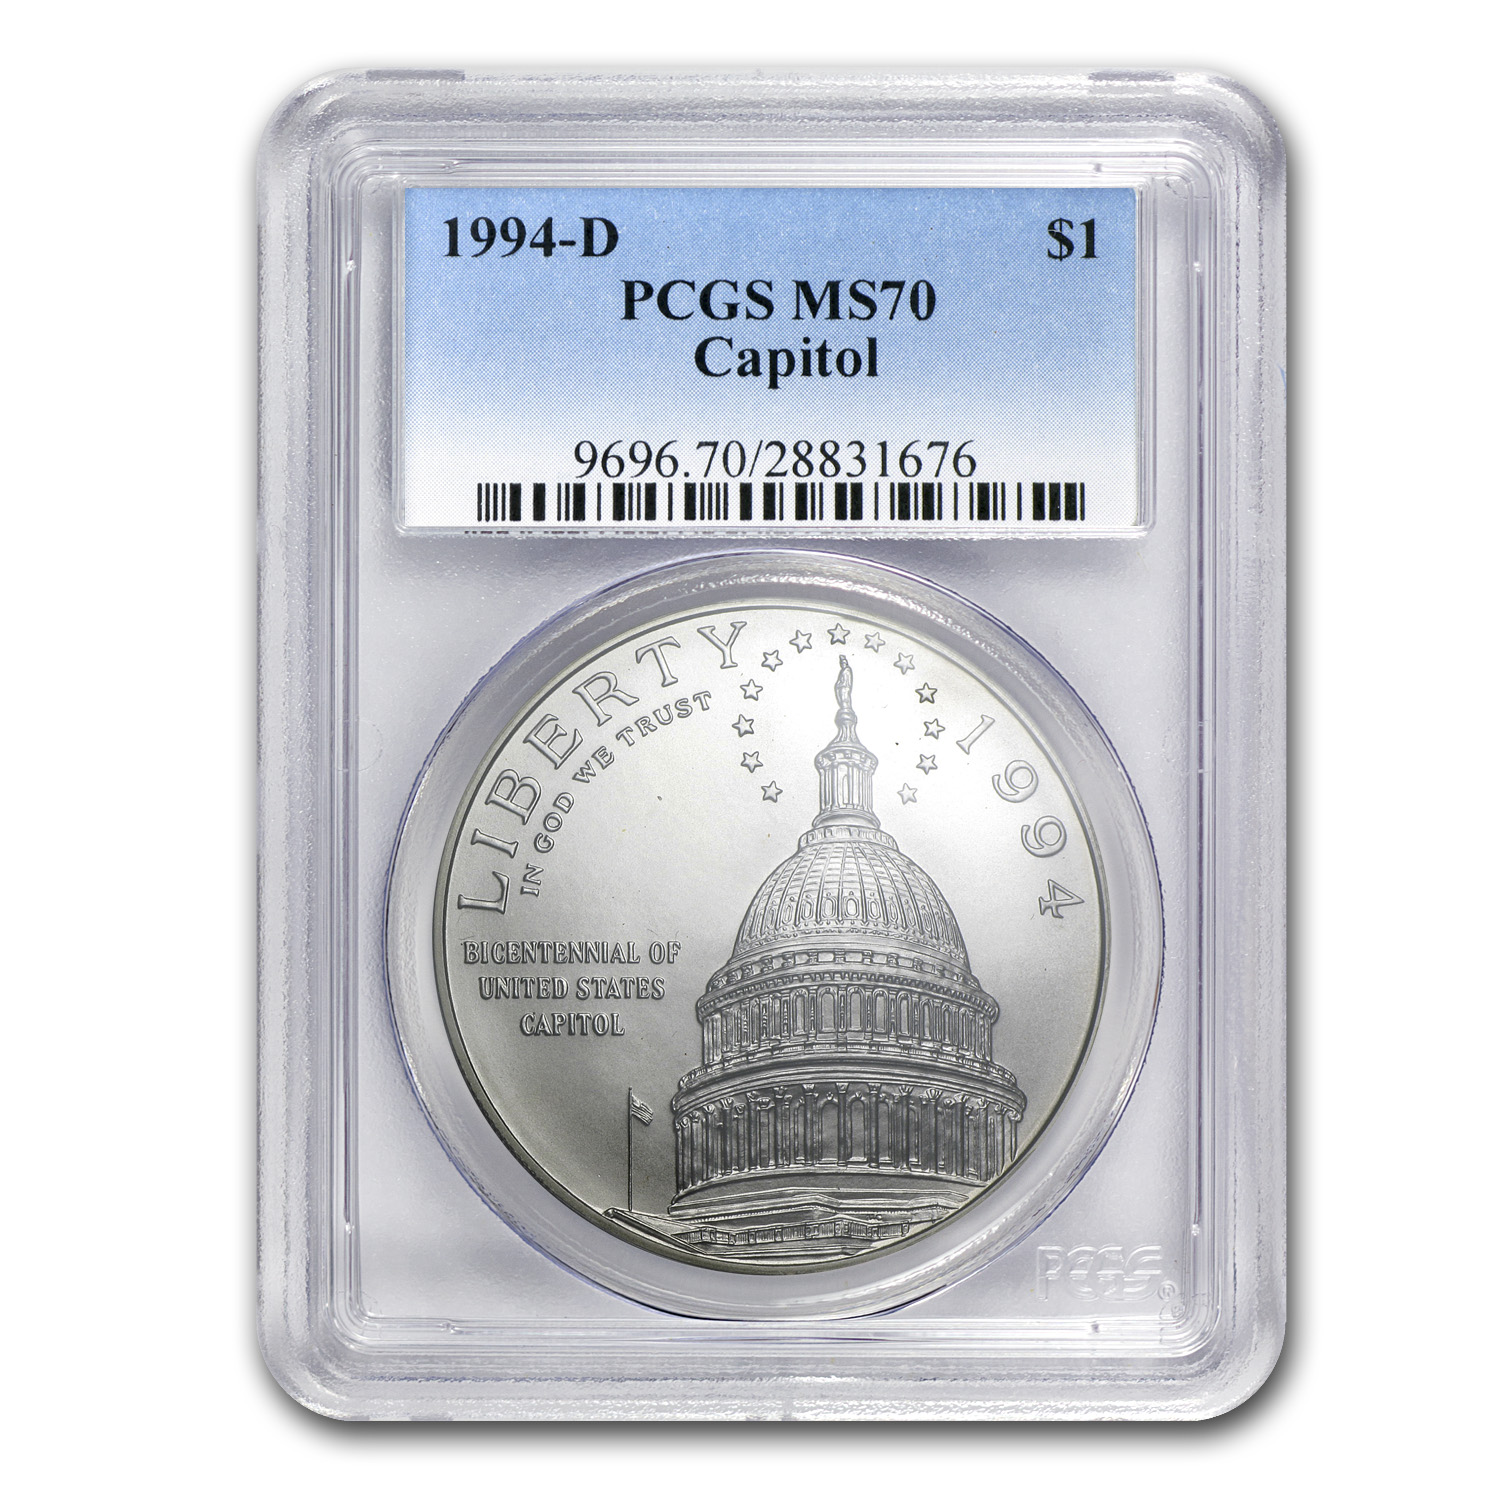 1994-D Capitol $1 Silver Commemorative MS-70 PCGS